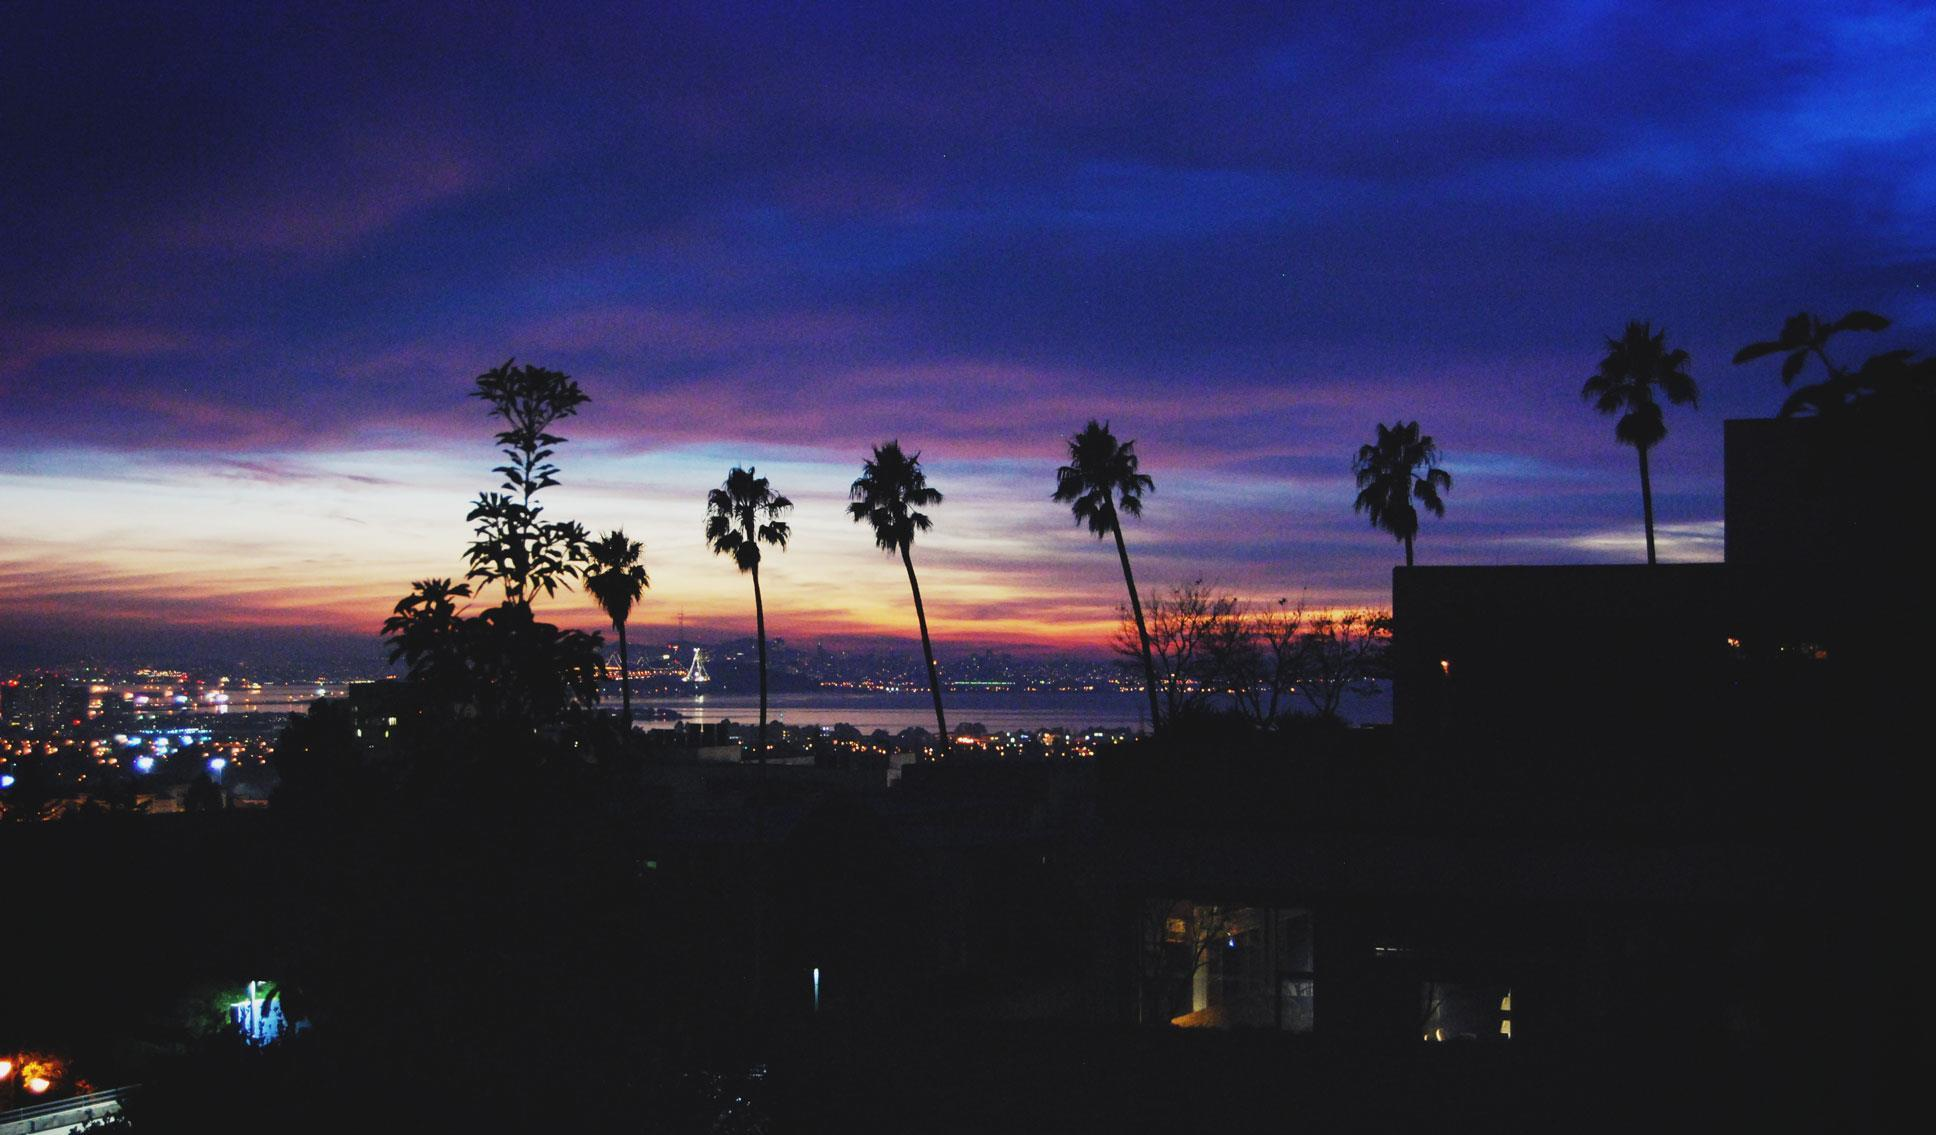 A photograph of the view outside of my old room at Casa Zimbabwe, the cooperative house I lived in when I studied at UC Berkeley. It shows a beautiful sunset of a warm Californian evening, with palm trees silhouetted by a gorgeous sky of pinks, blues and purples. The Bay Bridge and the city of San Francisco can be seen on the horizon. Taken in October, 2012.